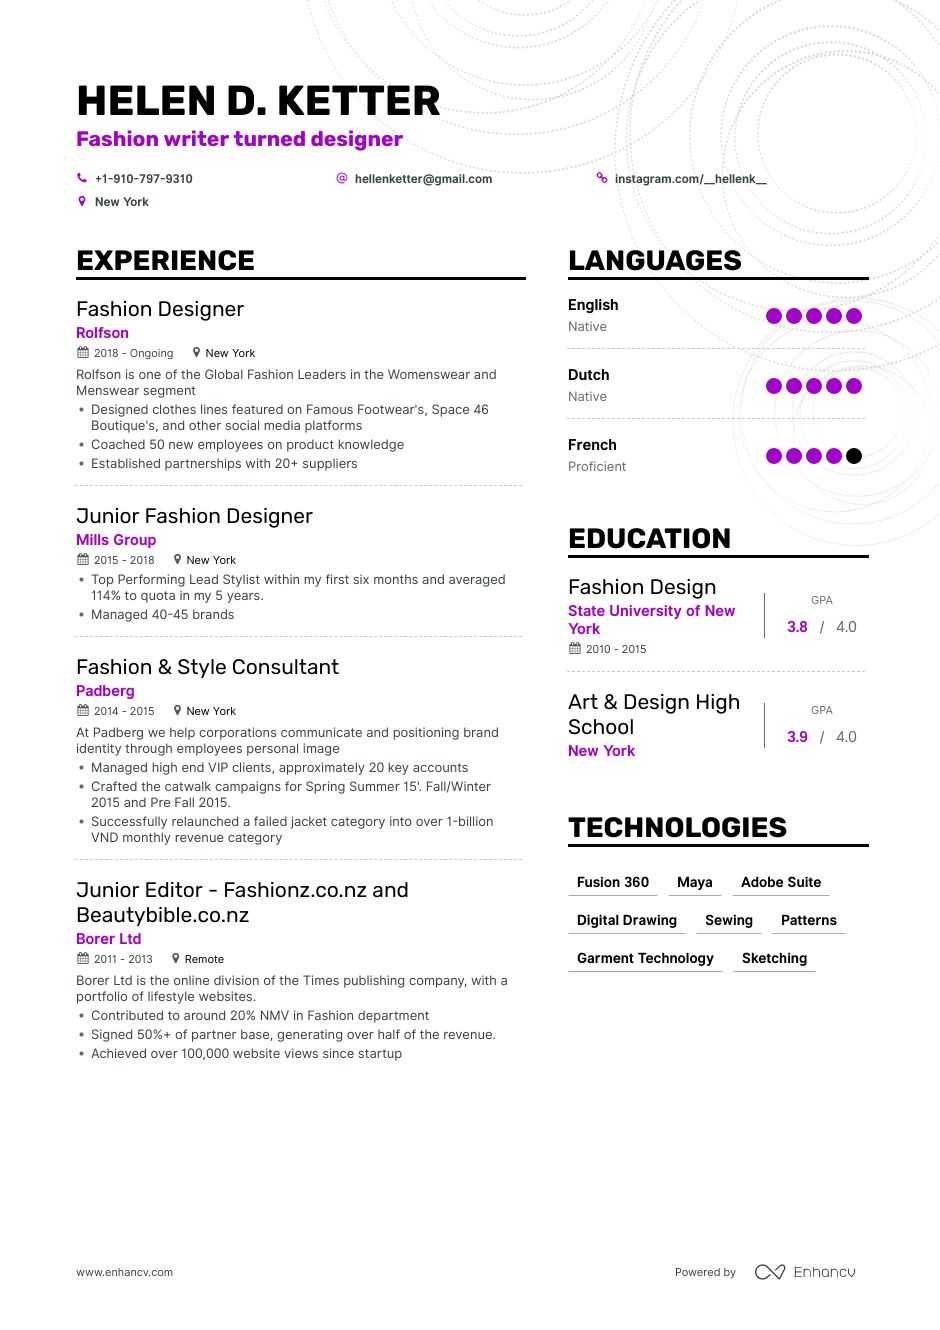 top fashion designer resume examples expert tips enhancv creative for post office Resume Creative Resume For Fashion Designer